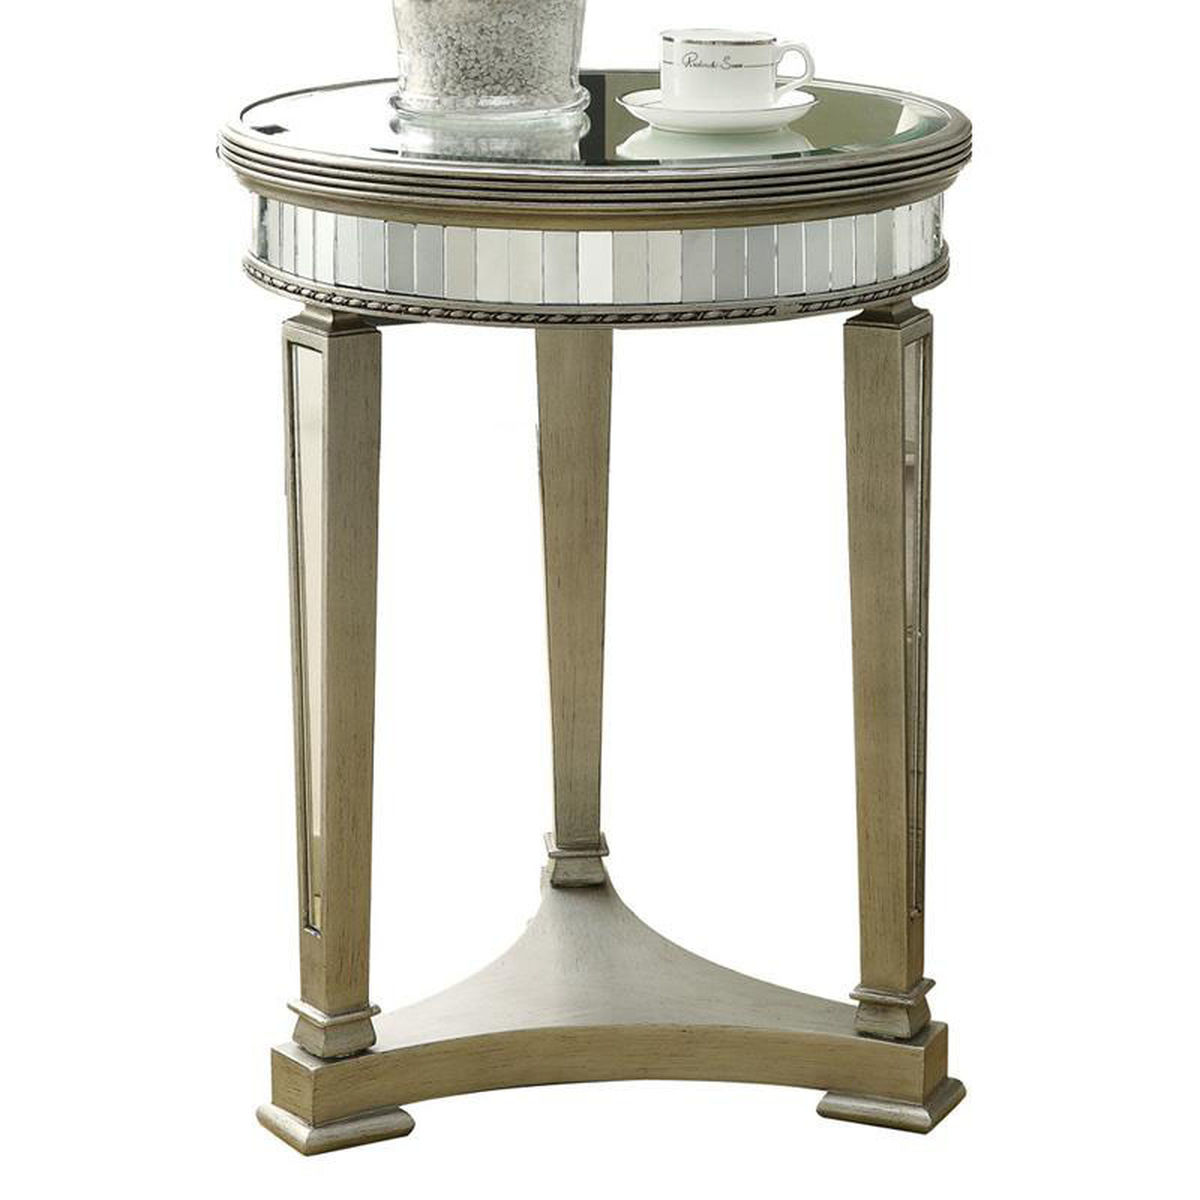 round silver accent table bizchair monarch specialties msp main pedestal our contemporary diameter with mirror finish brushed metal and wood entry modern outdoor nic ikea chest